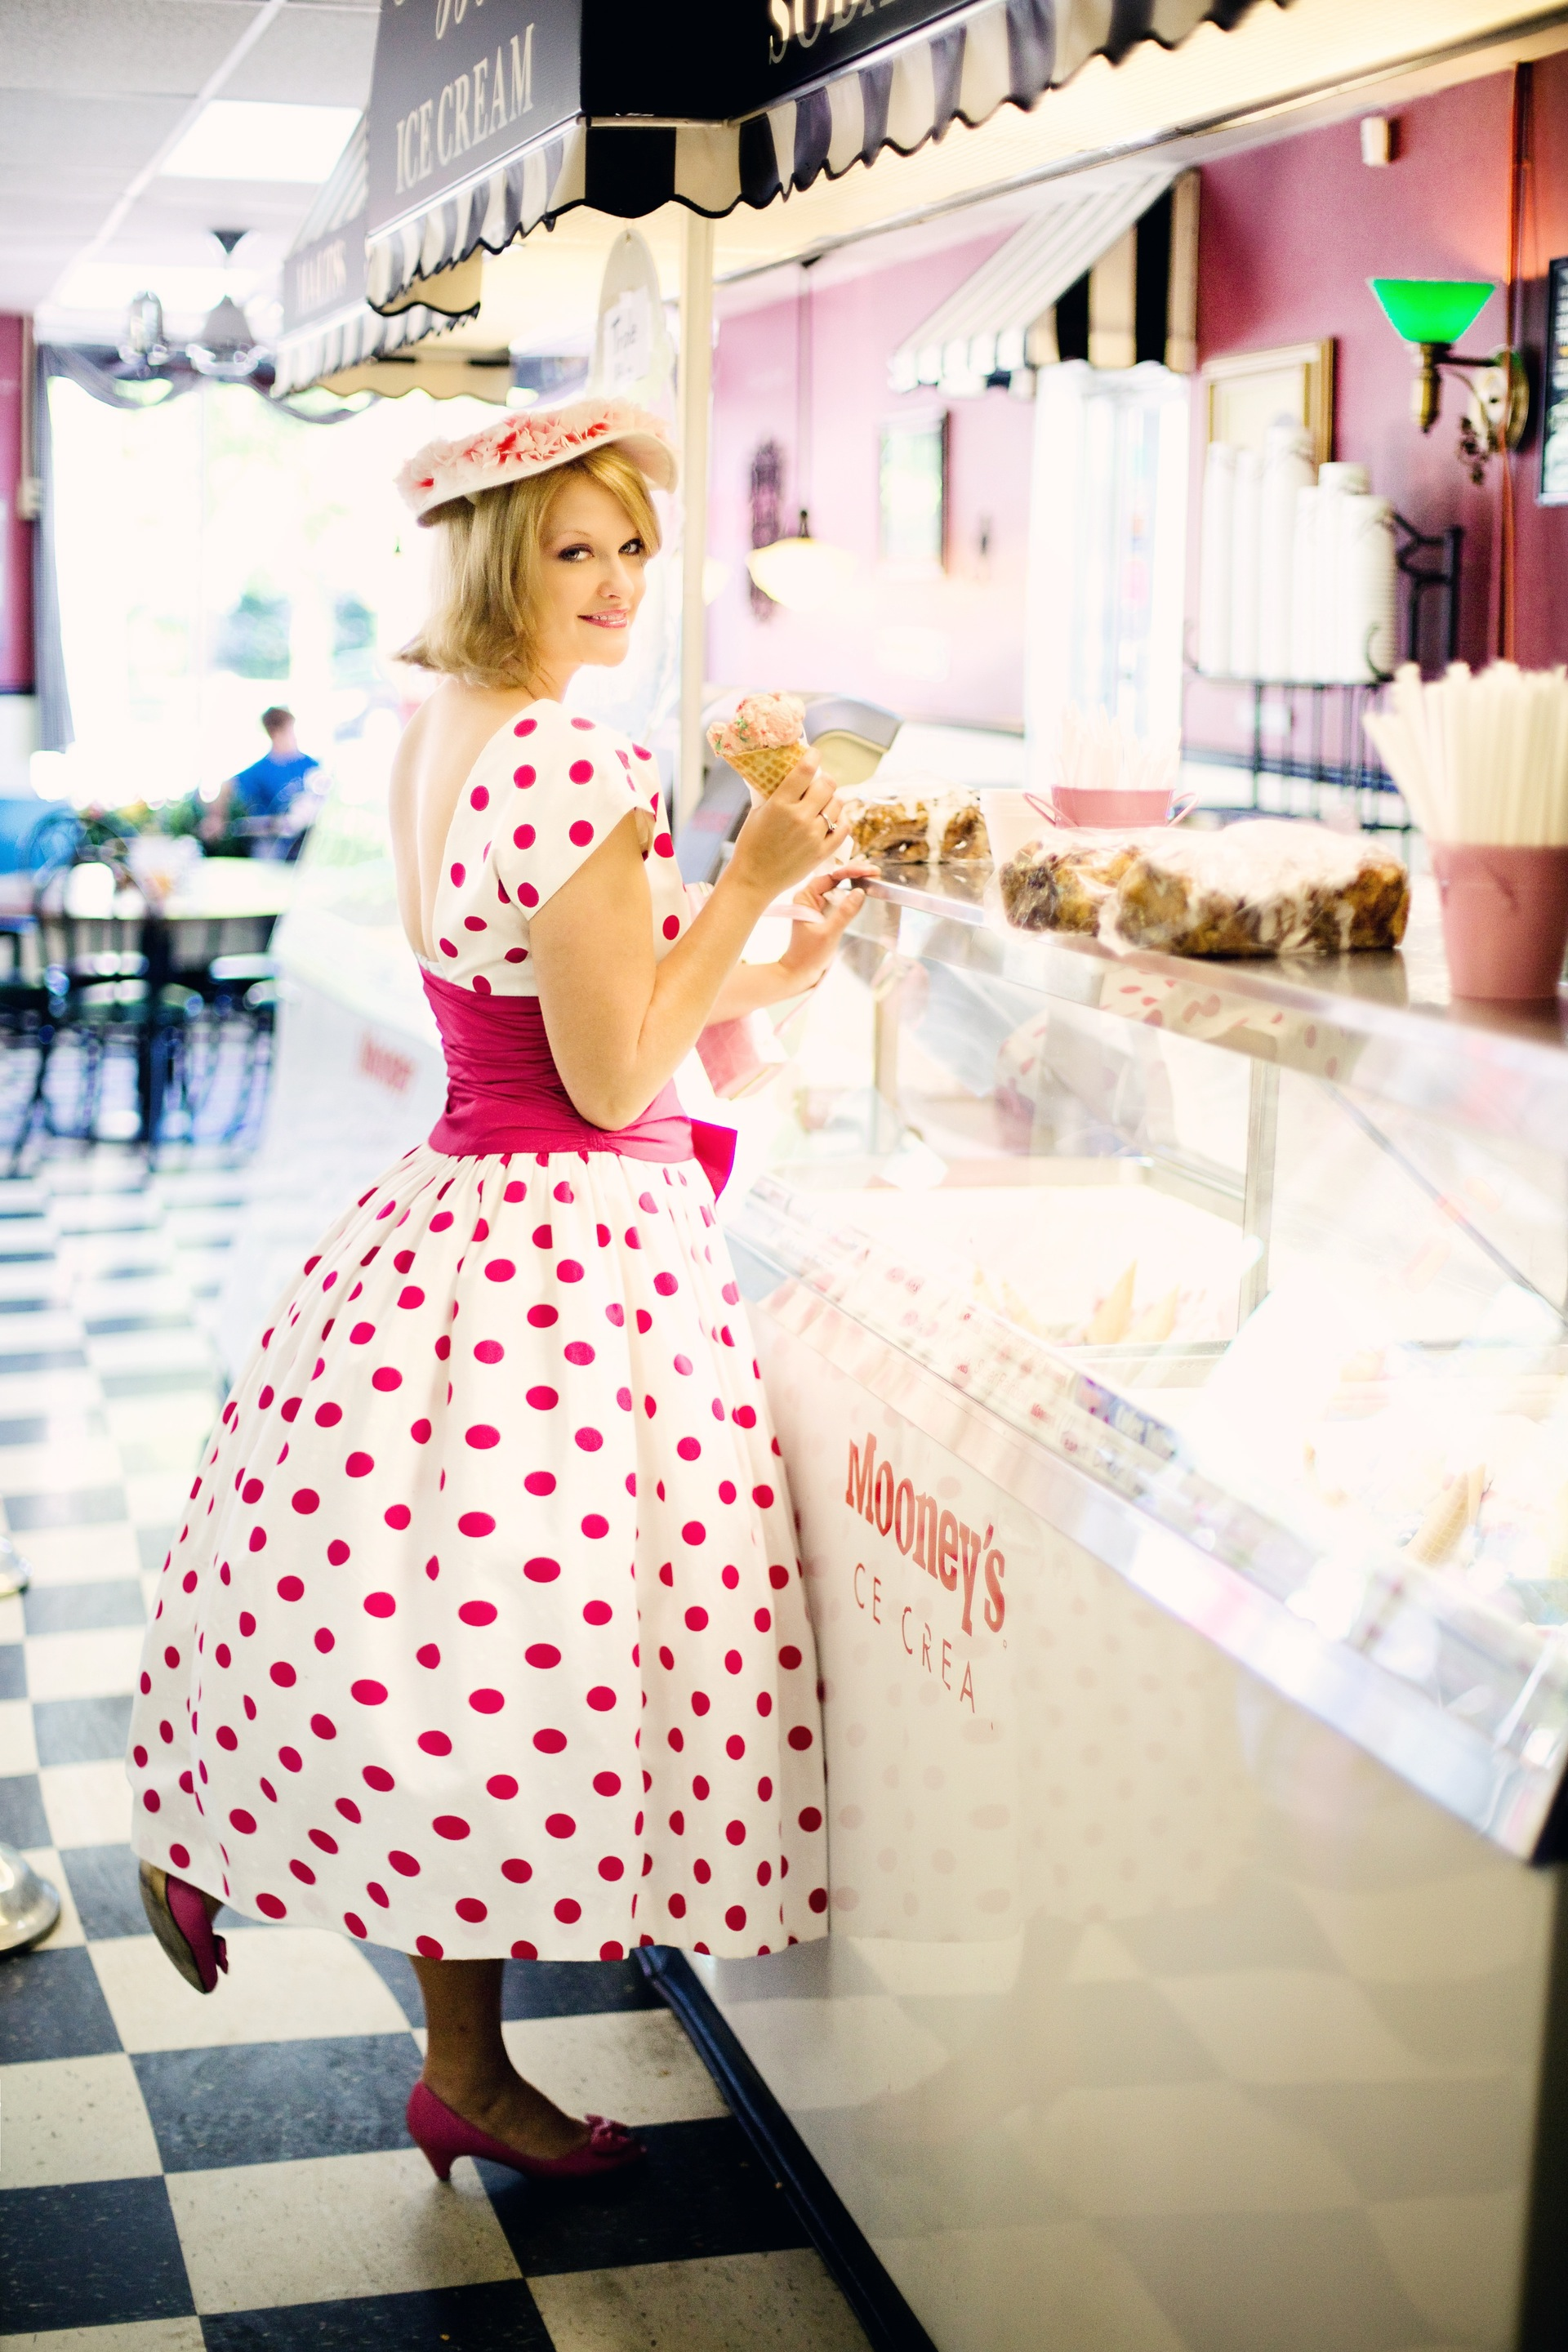 vintage-ice-cream-parlor-pretty-young-woman-vintage-polka-dot-dress-37647